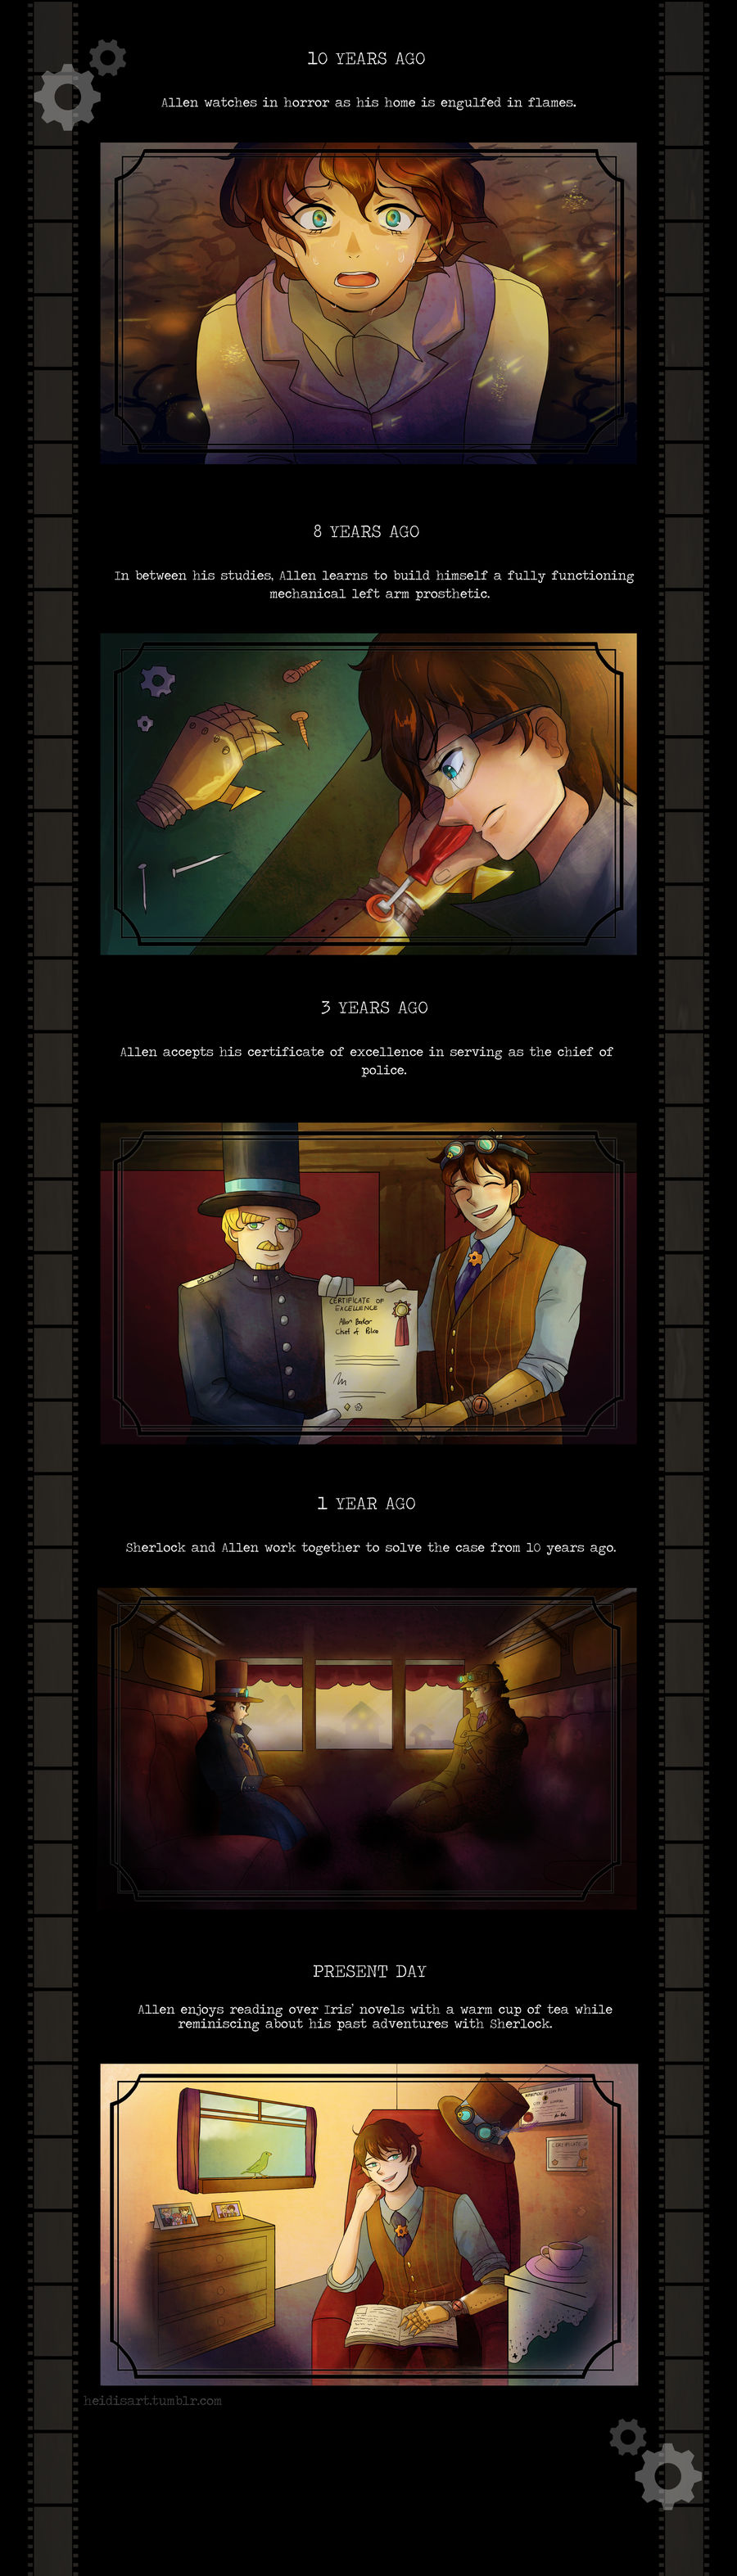 DGS OC Contest 2015 Entry: Allen Baker Part 2 by AngelsMelodie